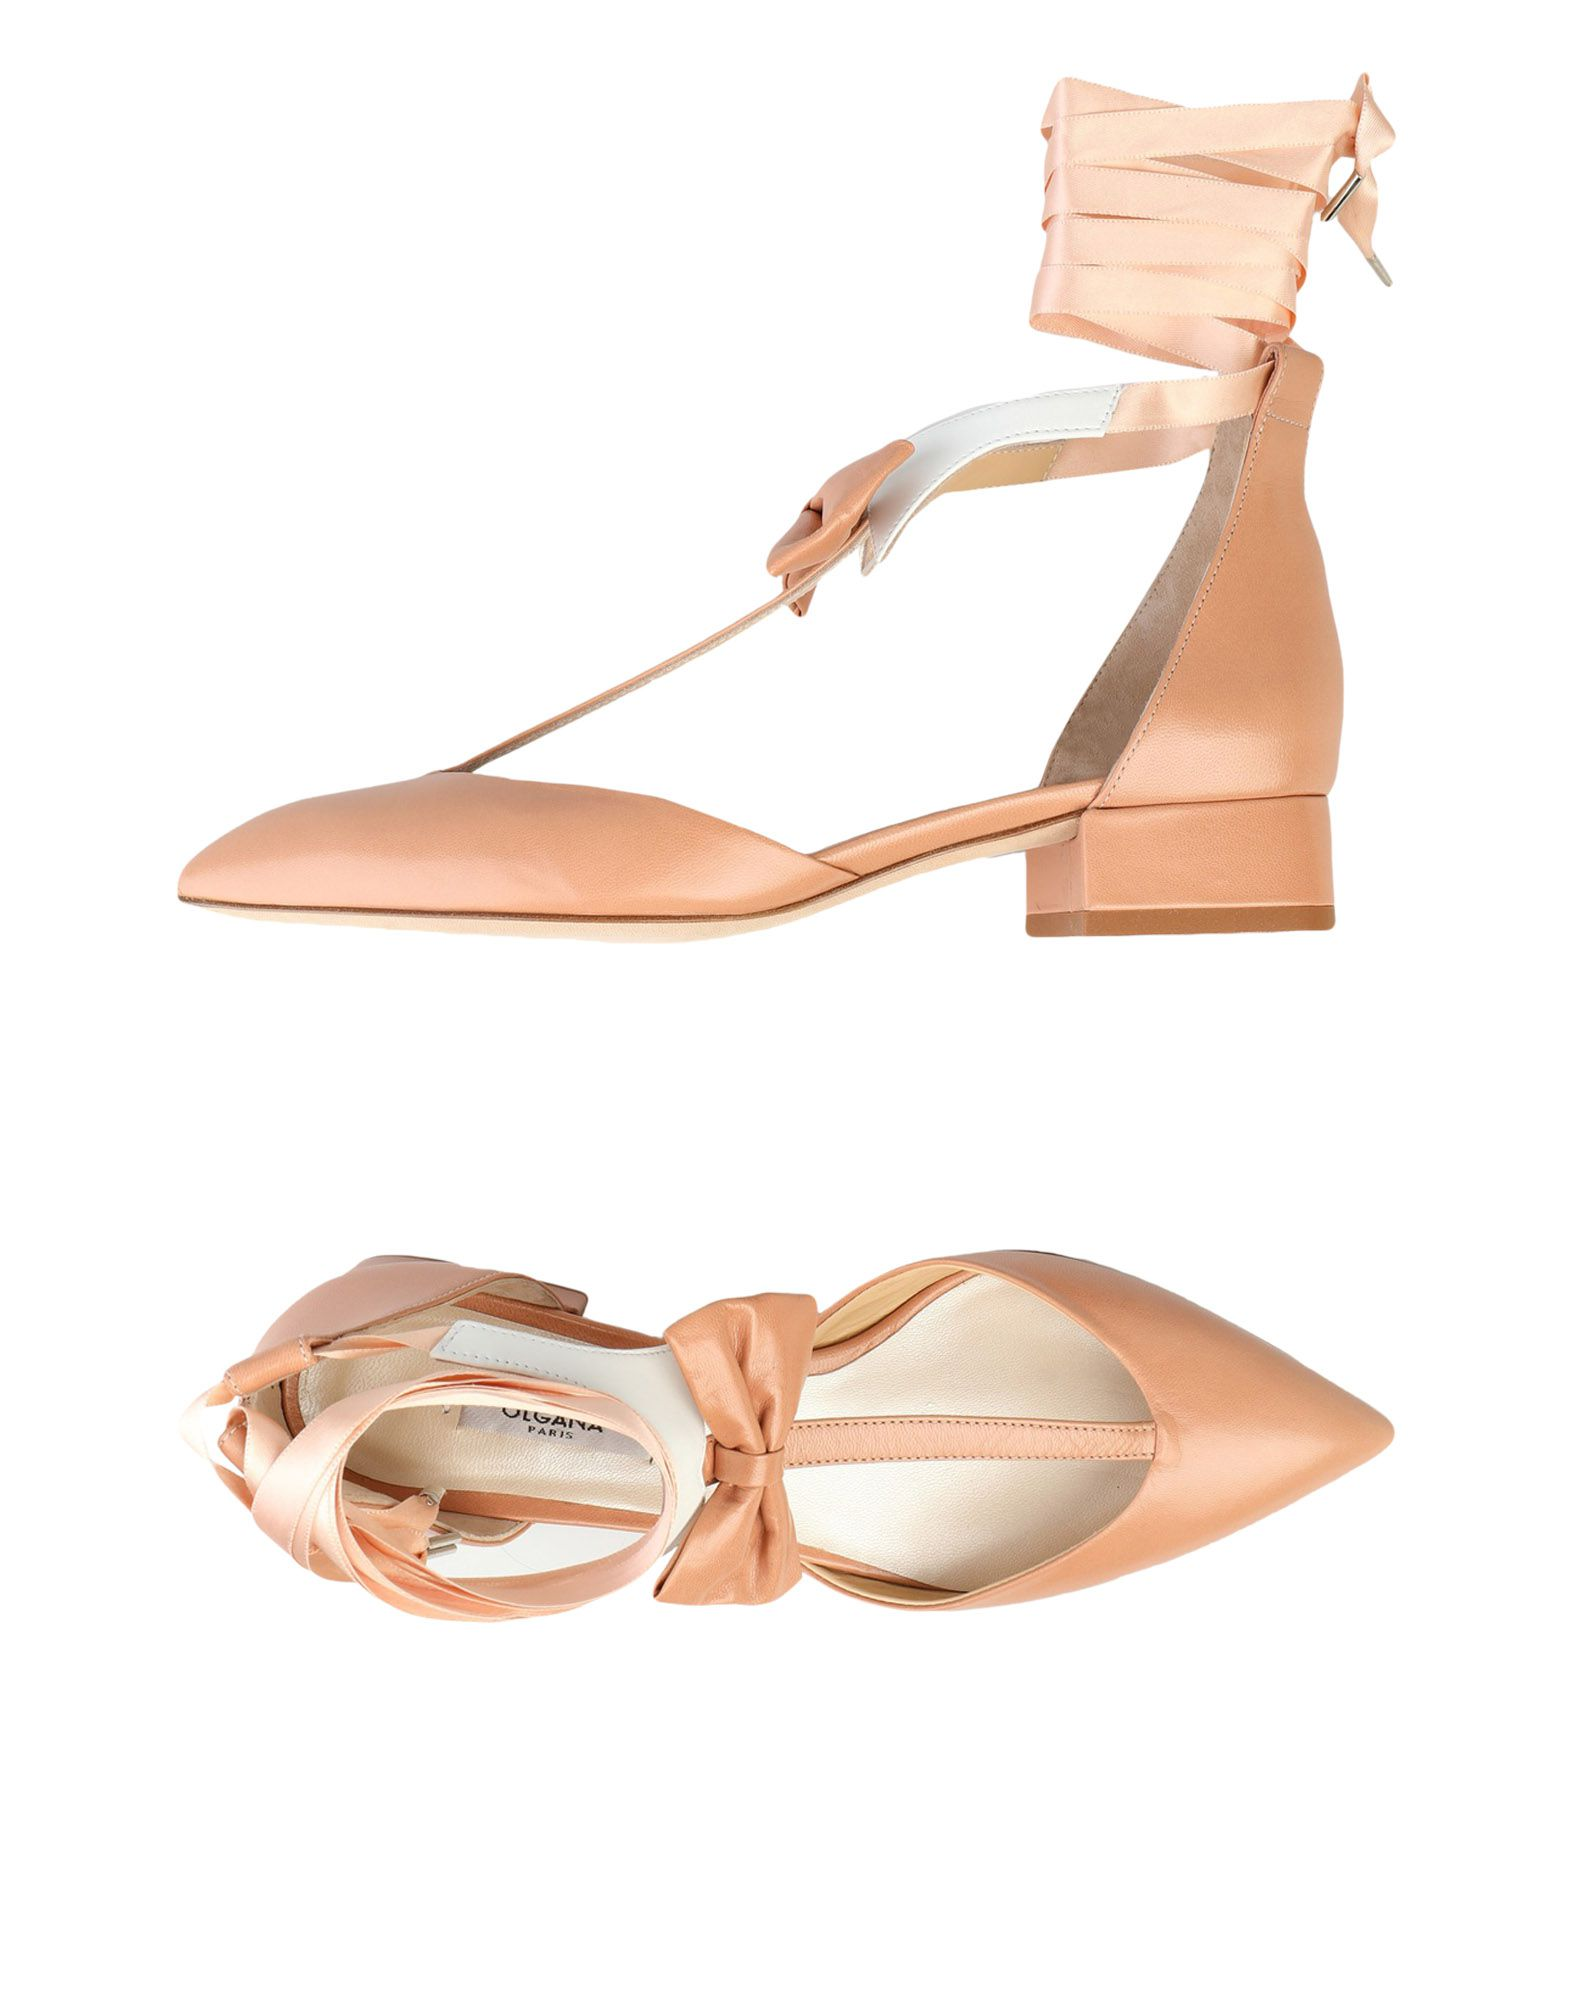 OLGANA PARIS Pump in Pale Pink